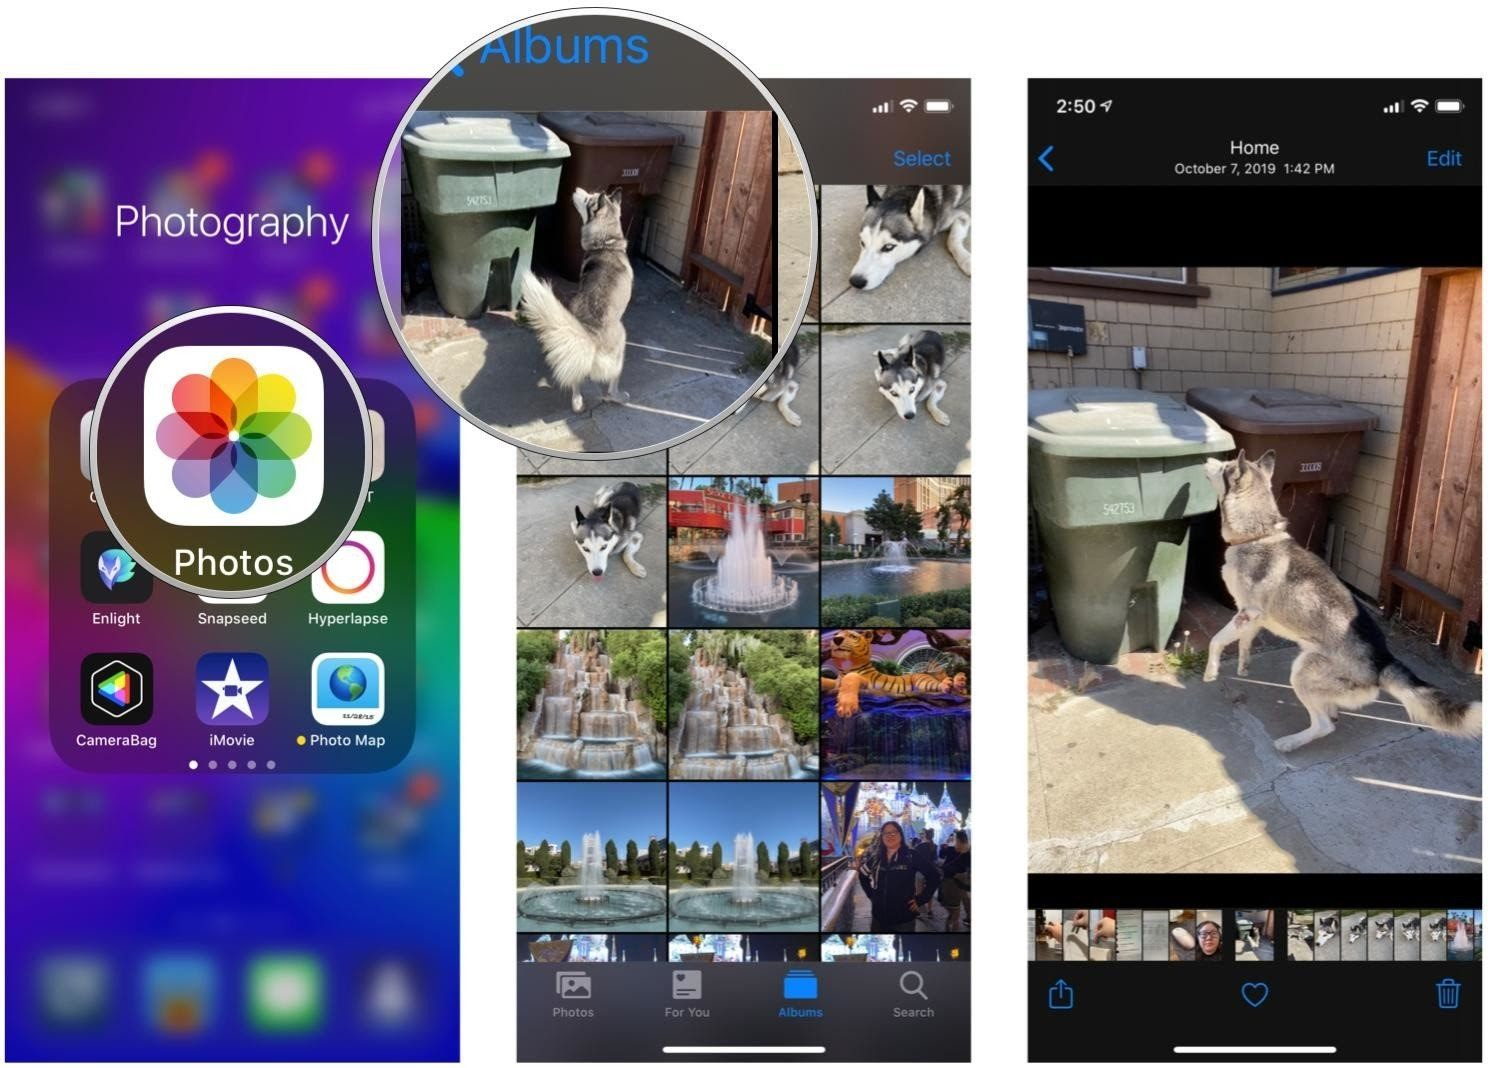 Live Photos - What Are the Best Apps to Edit Them